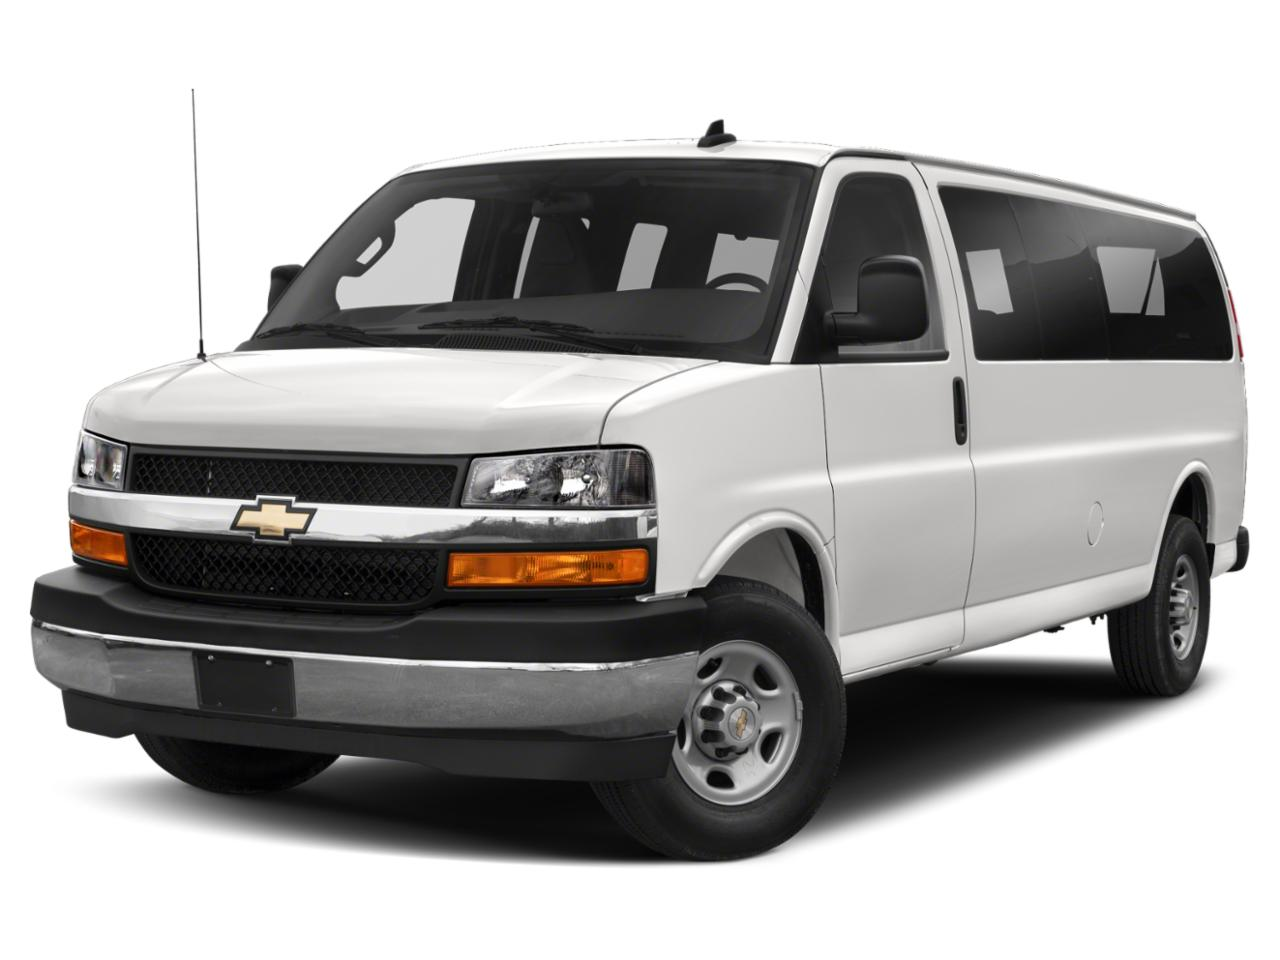 2021 Chevrolet Express Passenger Vehicle Photo in Milford, OH 45150